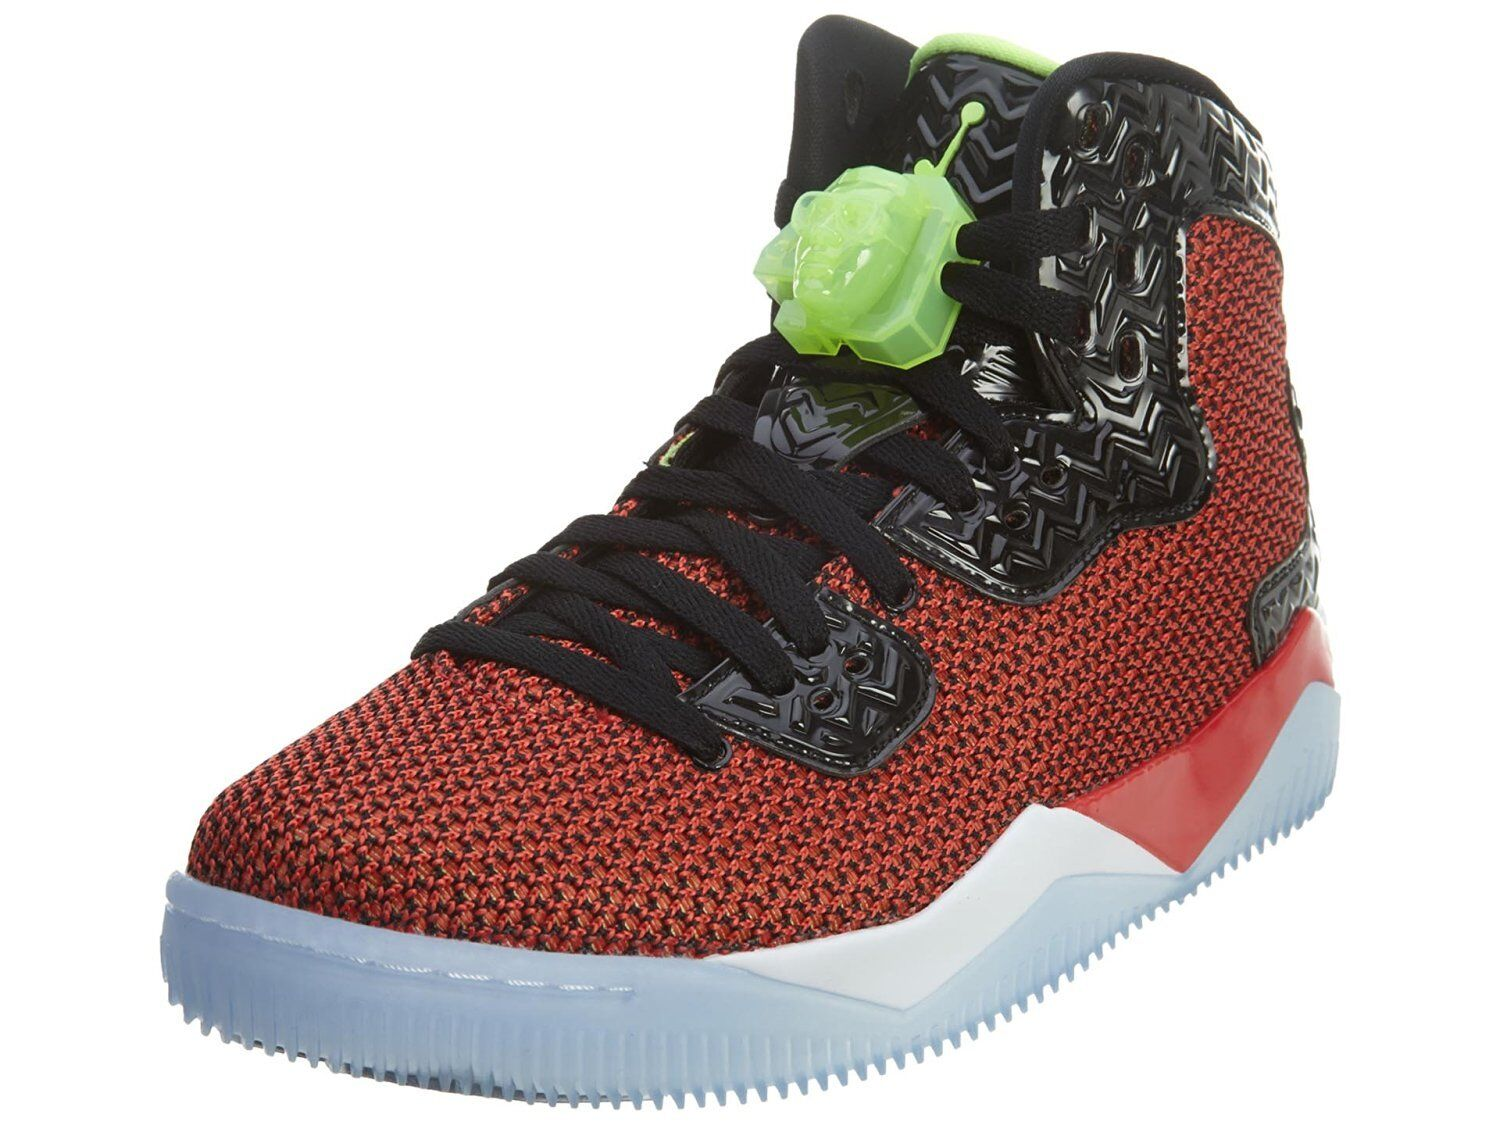 best authentic 3600a 76469 Nike Air Jordan Spike Forty PE Sz 11 University Red Ghost Green ...